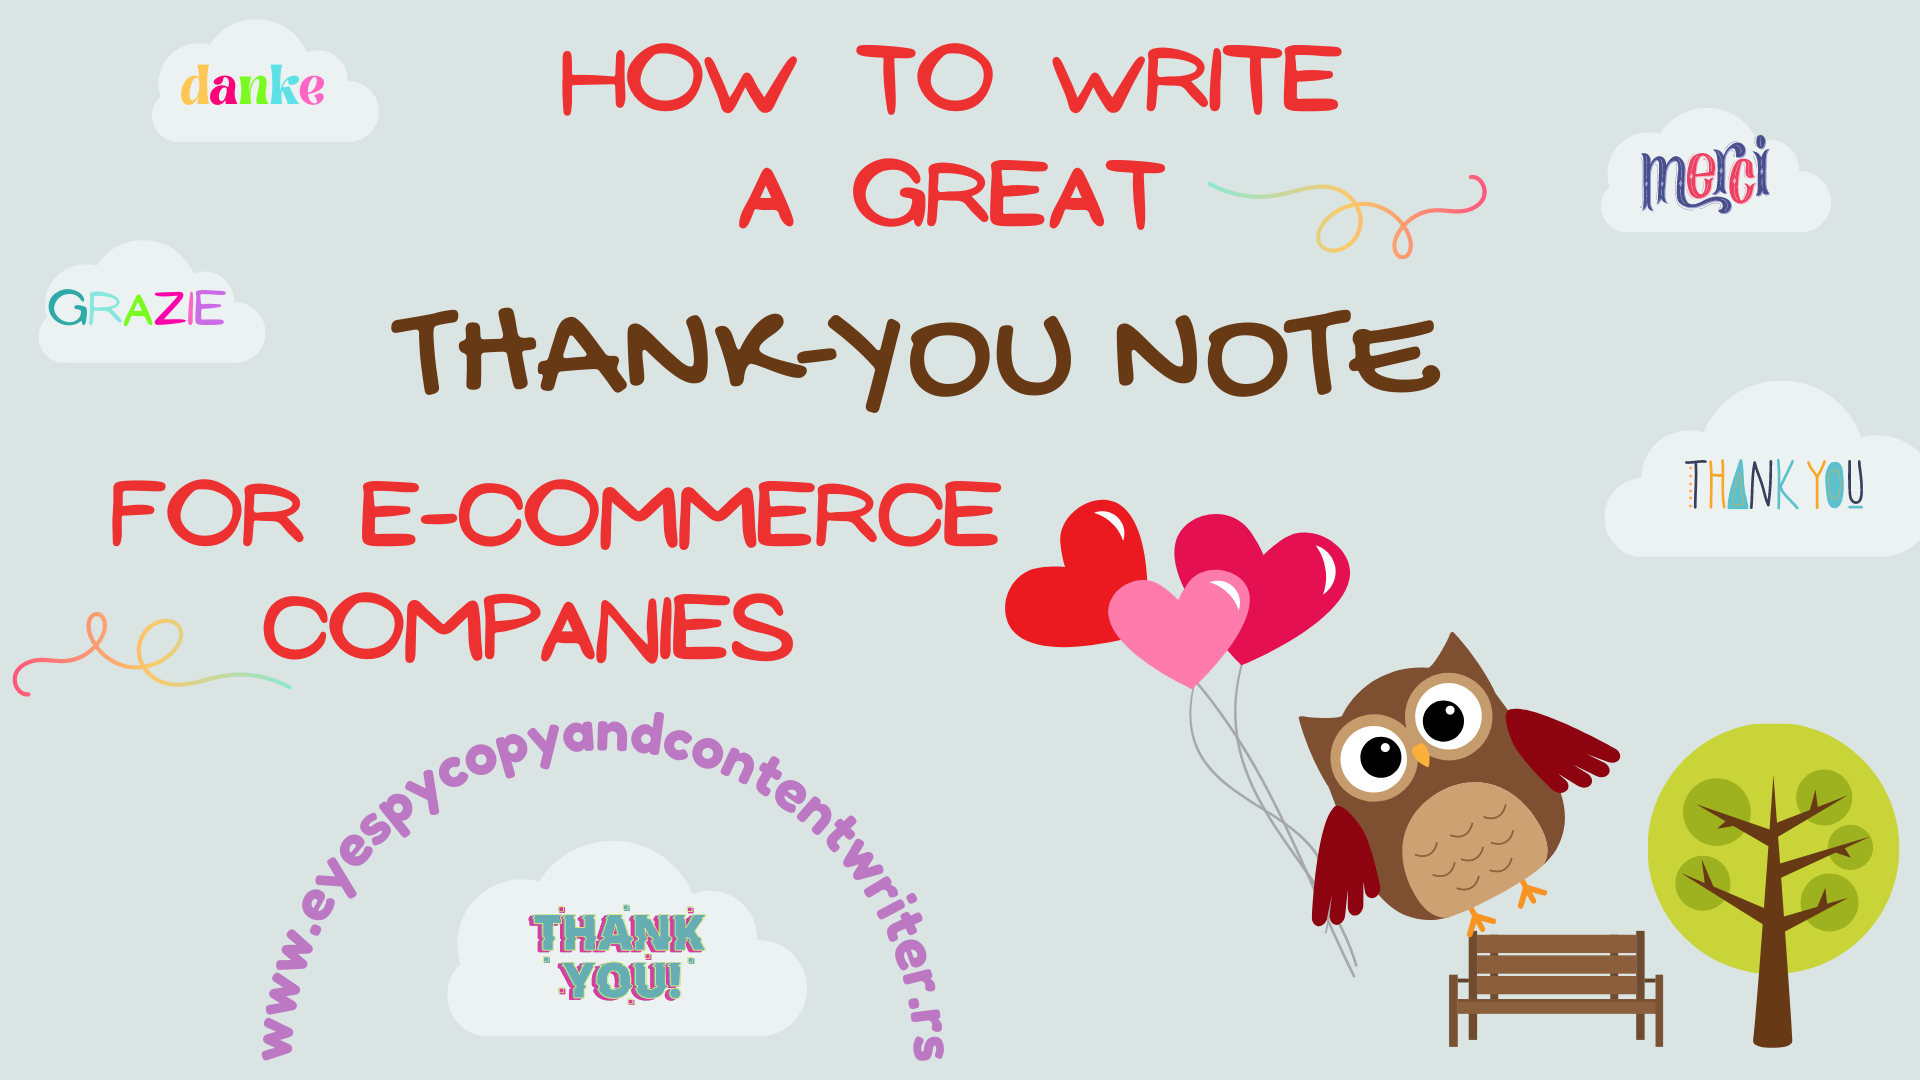 How to Write a Great Thank-You Note for E-Commerce Companies